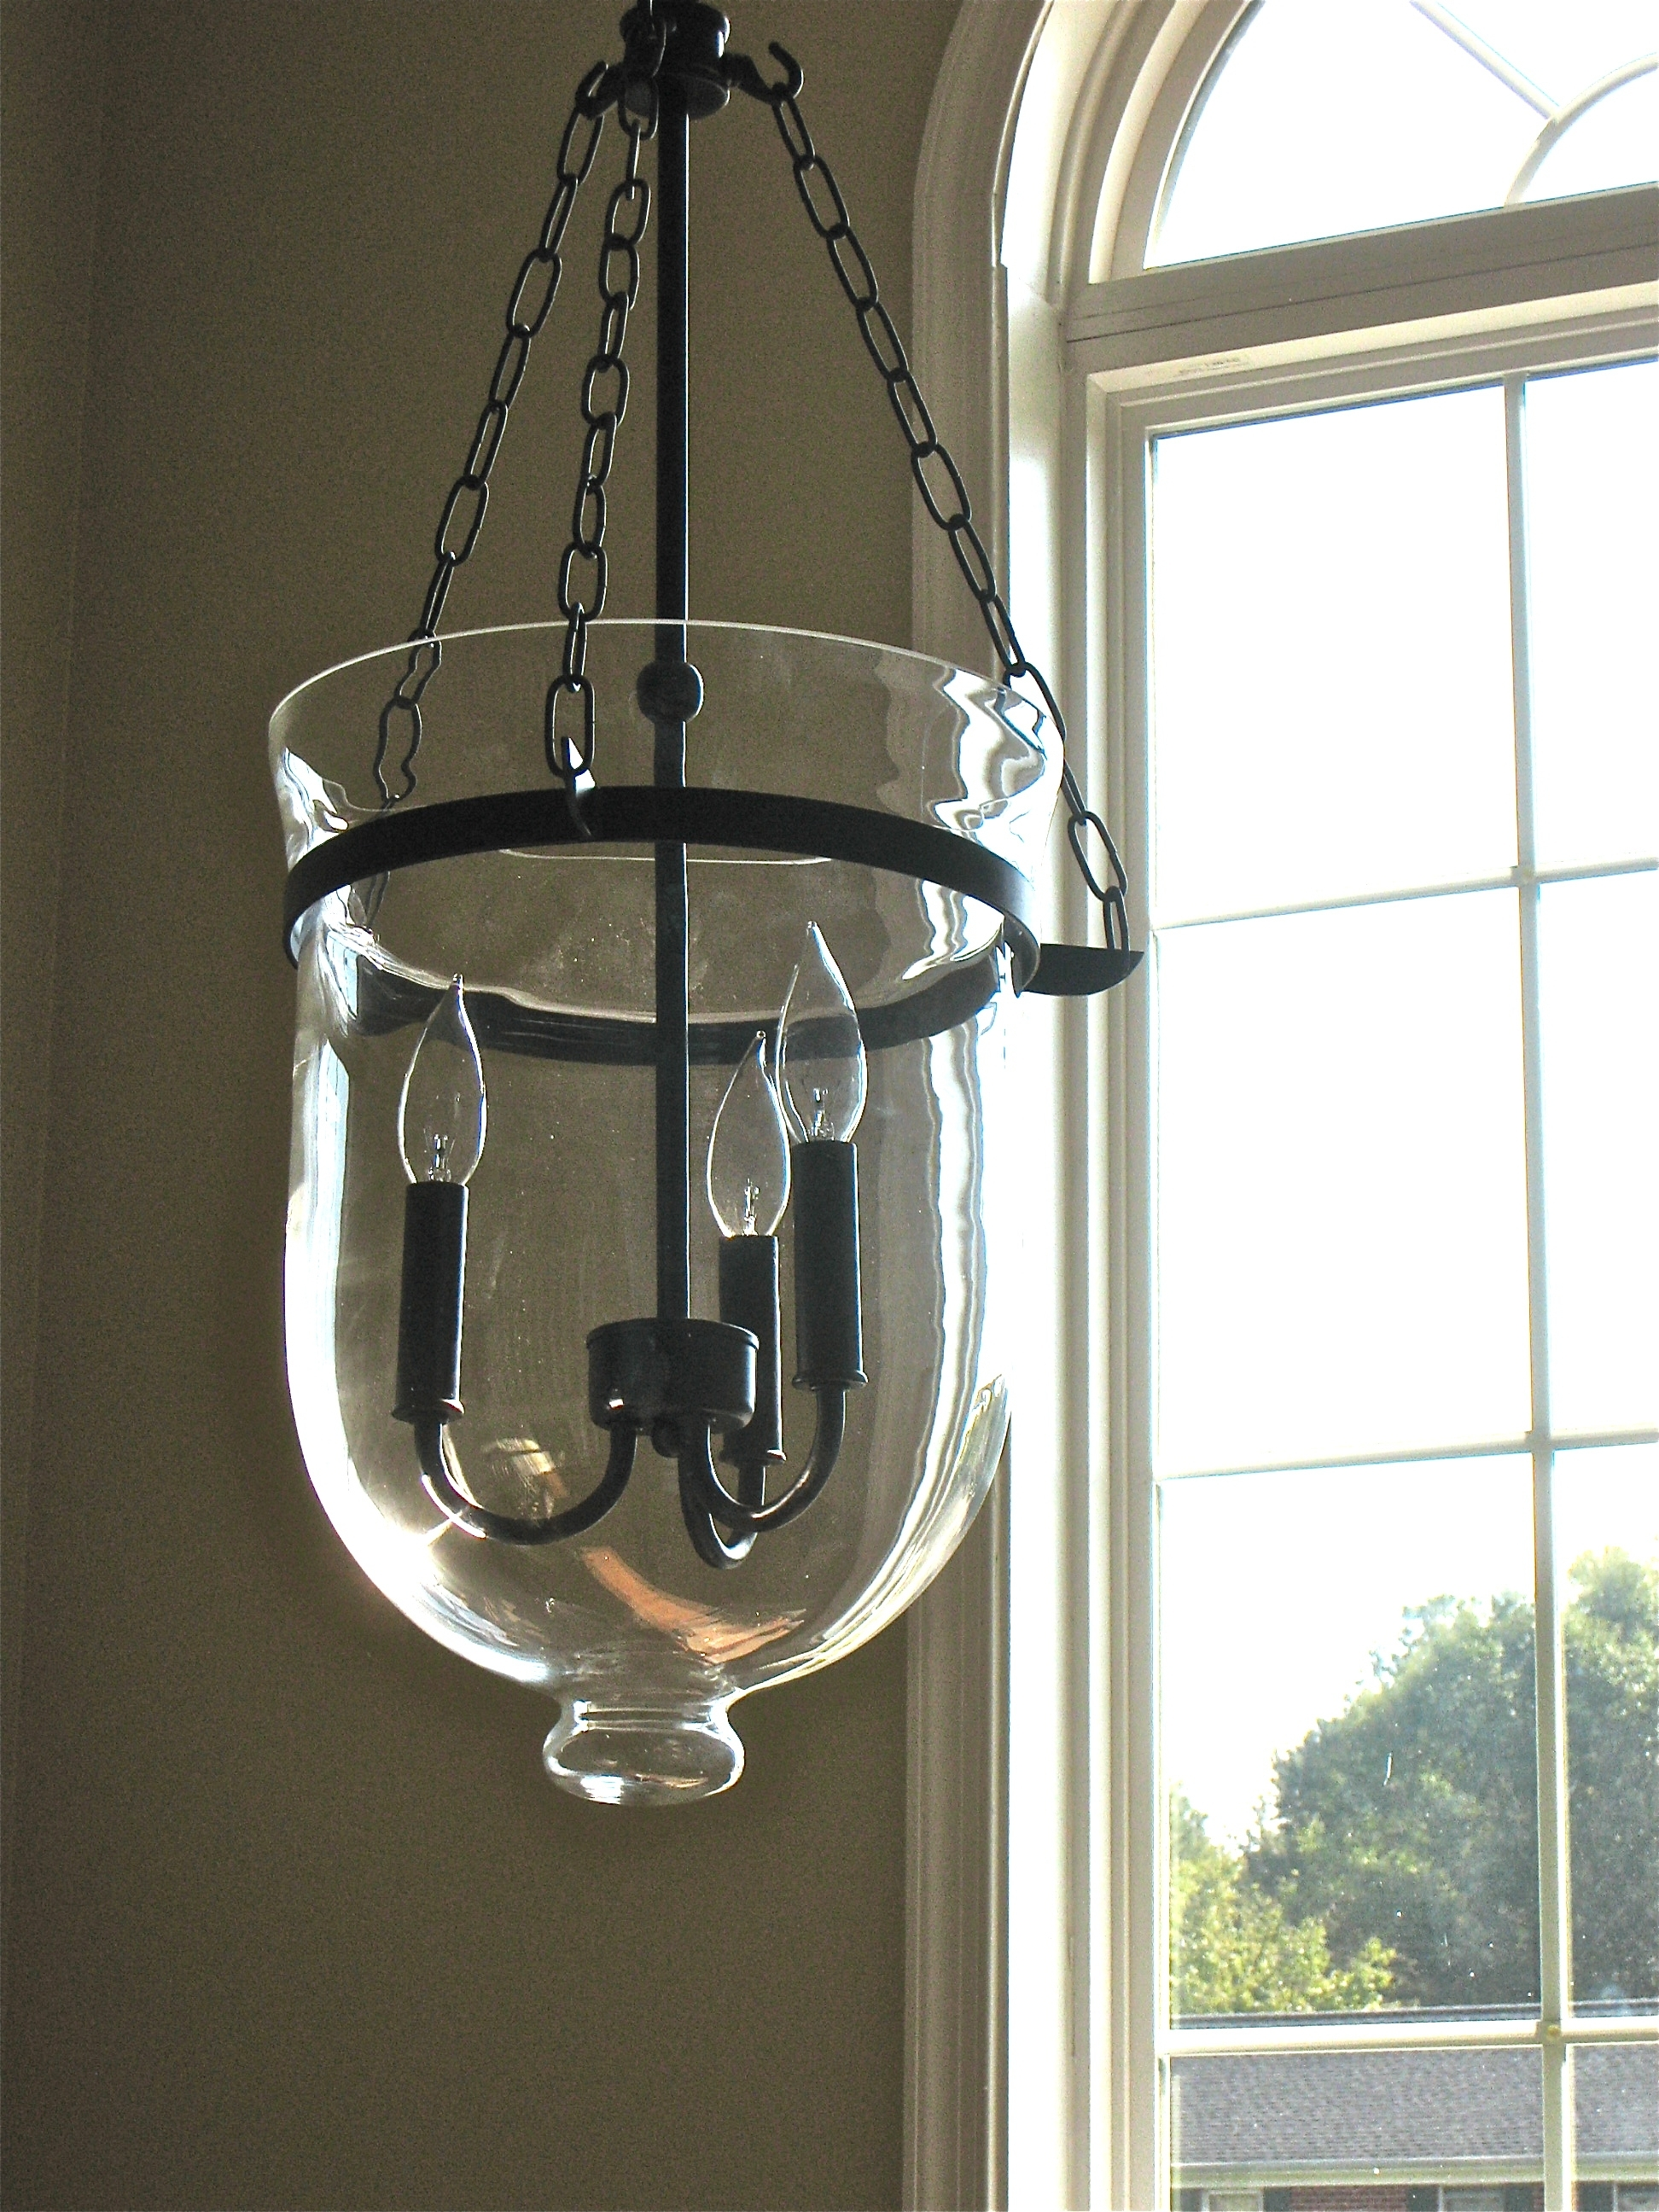 Light Fixture : 2 Story Foyer Chandelier Small Hallway Lighting Within Recent Small Hallway Chandeliers (View 6 of 20)